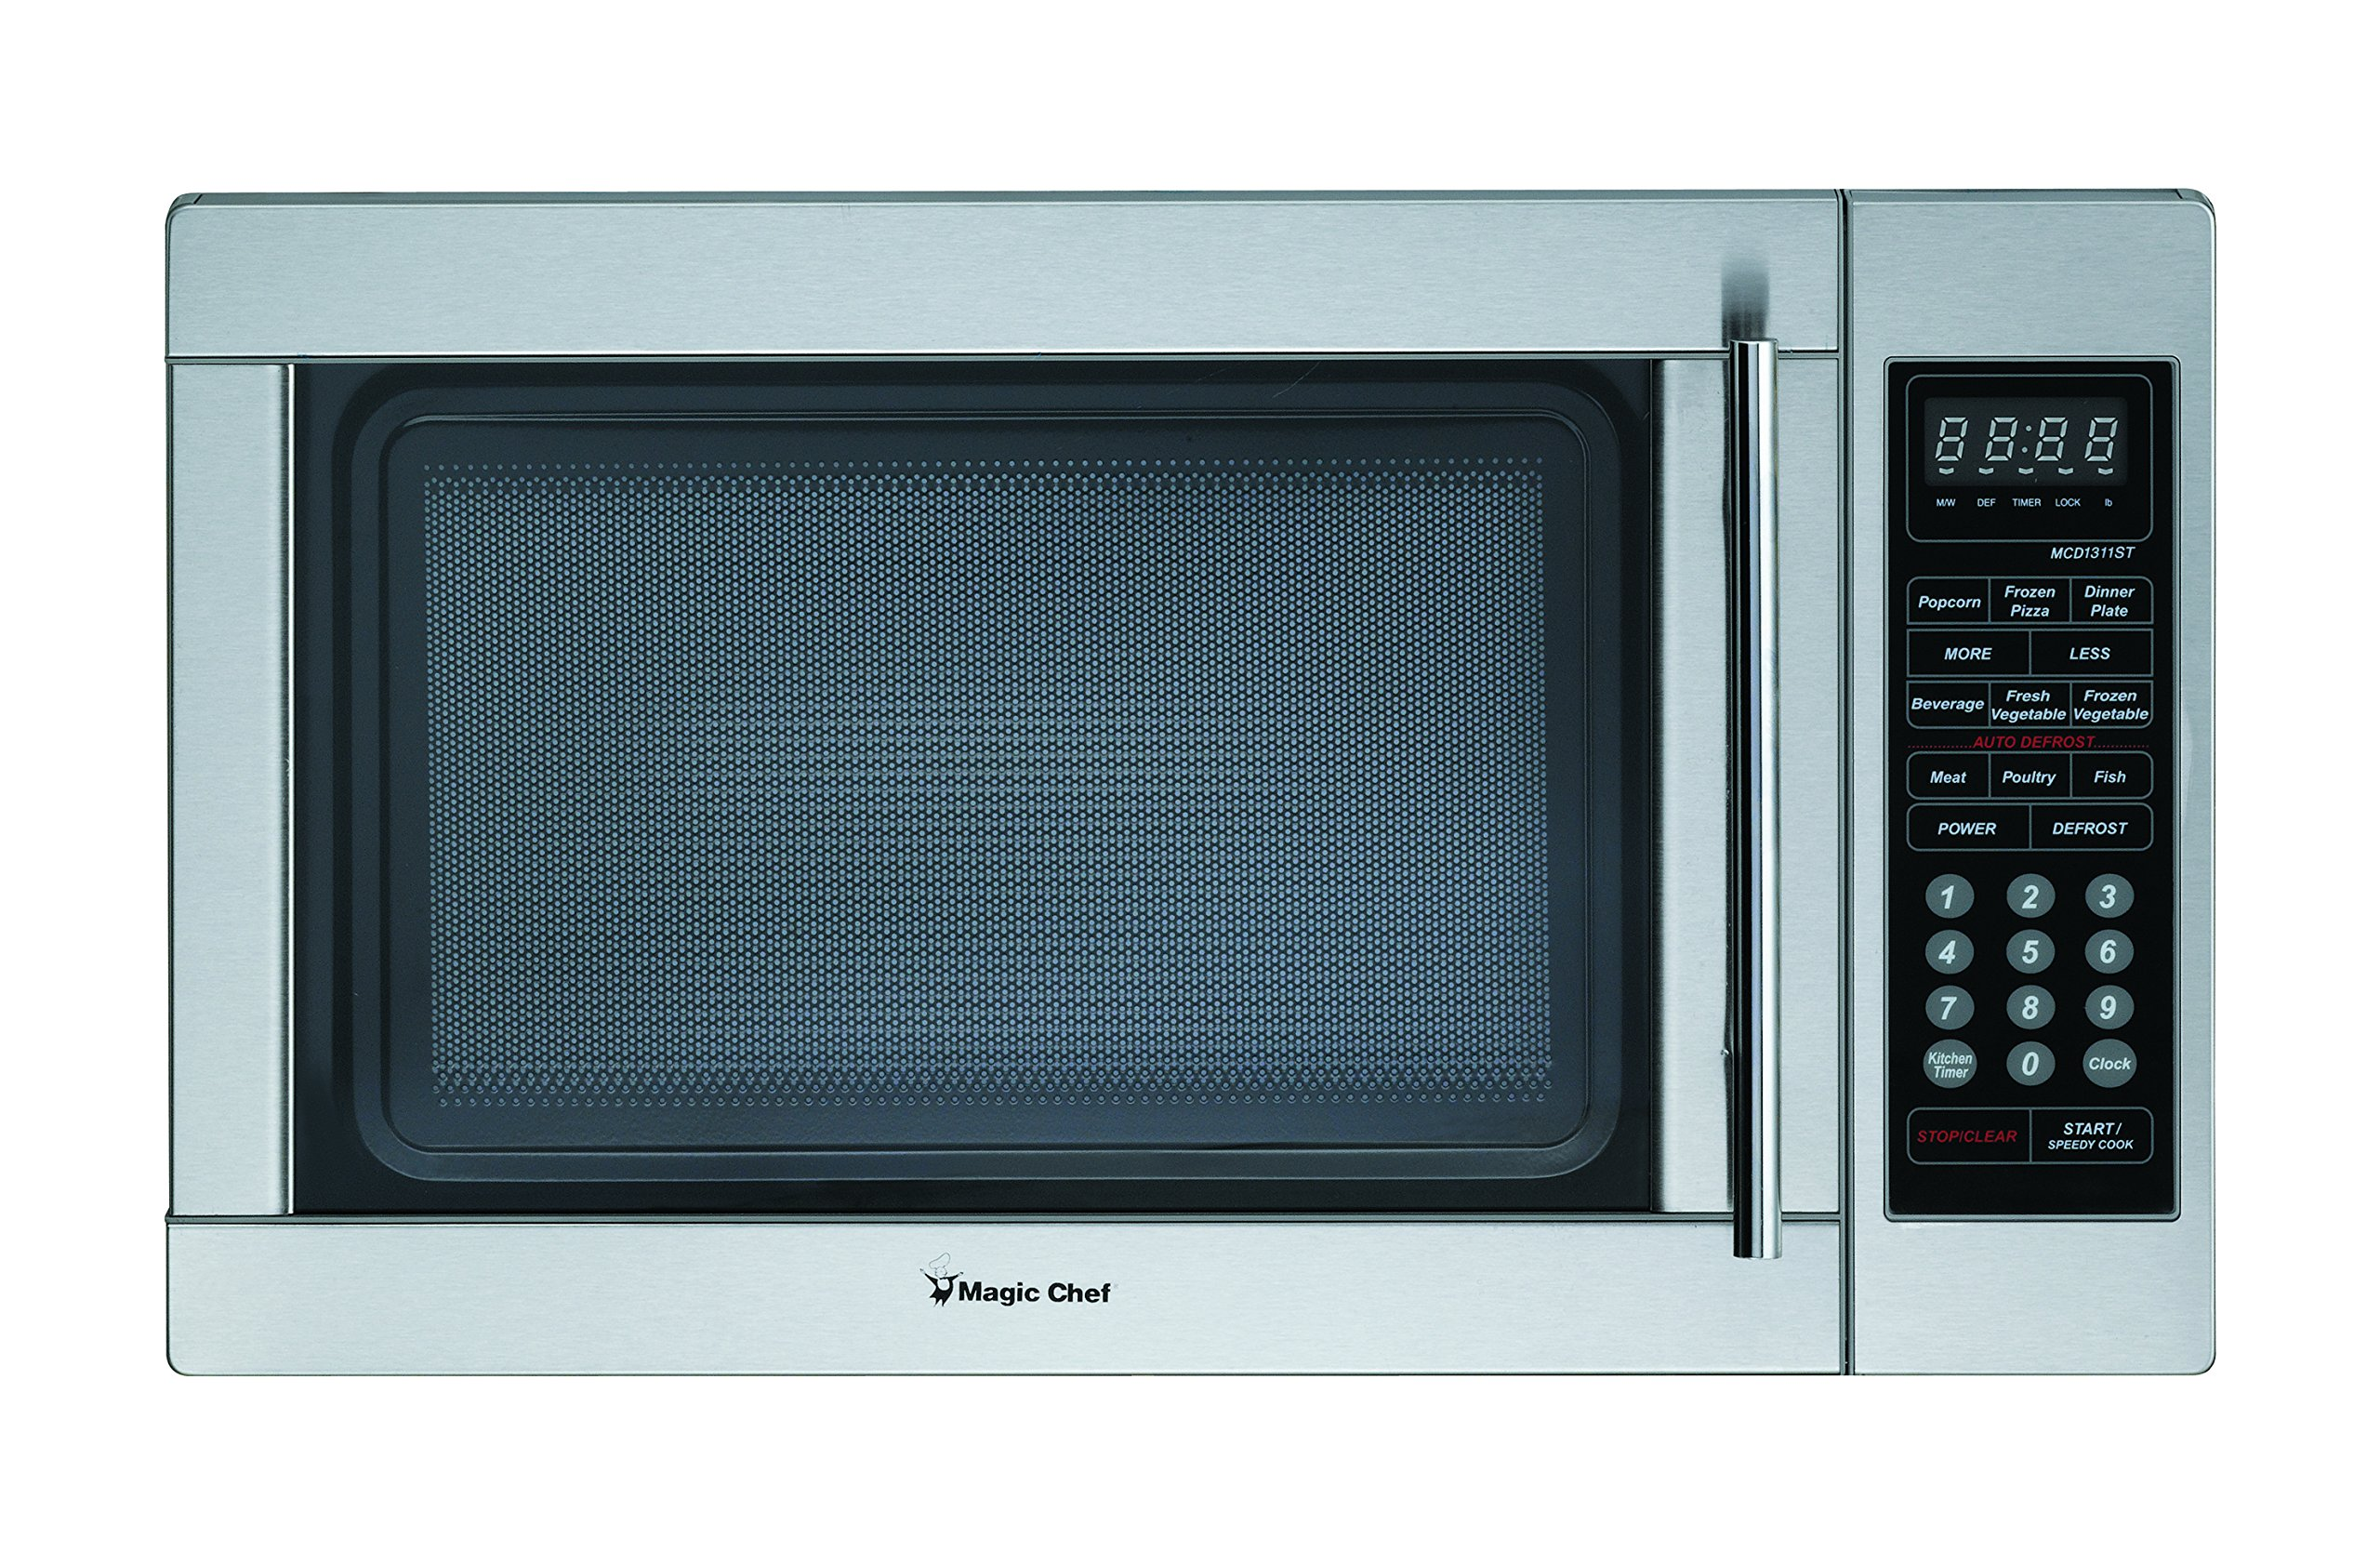 Magic Chef MCD1310ST 1.3 cu.ft. Microwave, Stainless Steel by Magic Chef